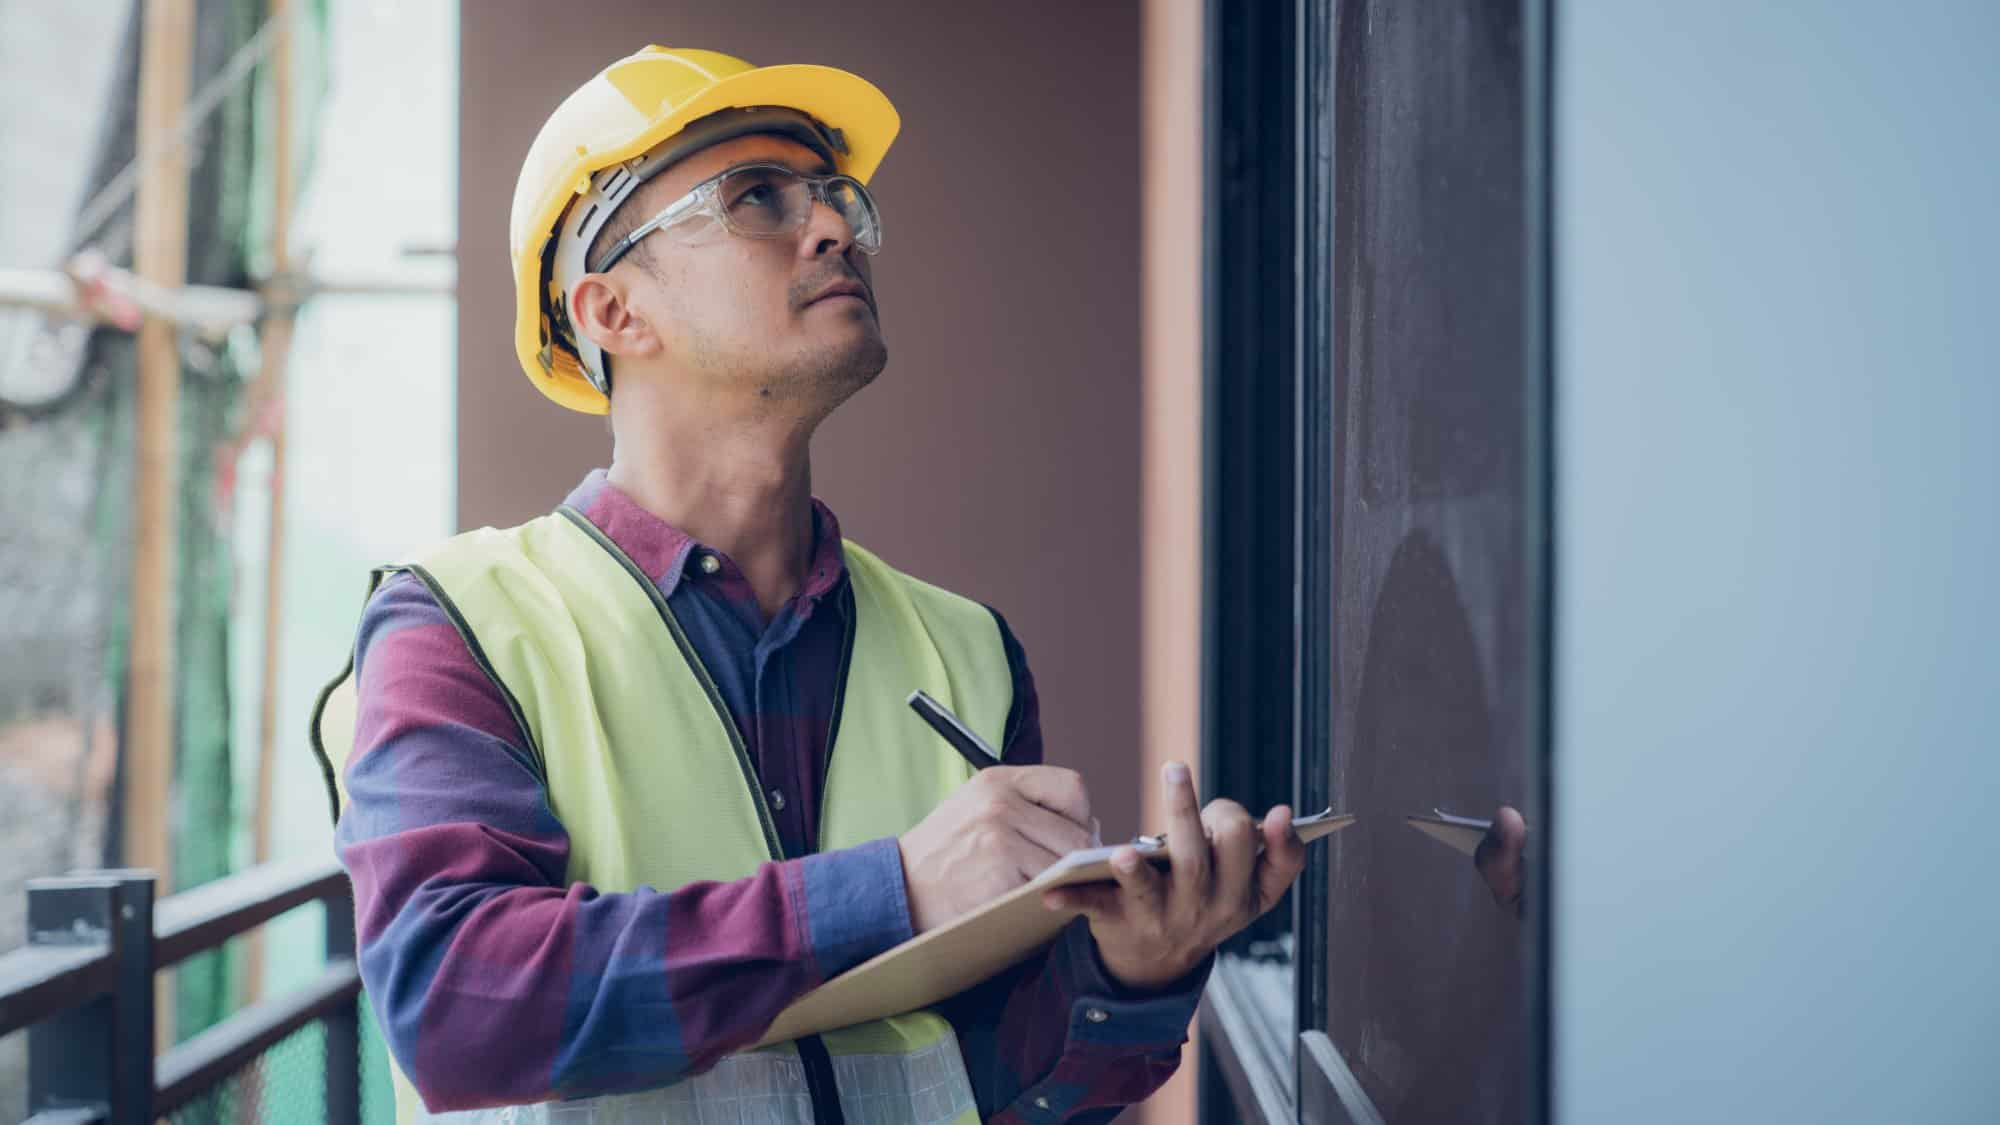 professional inspection for property manager inspection